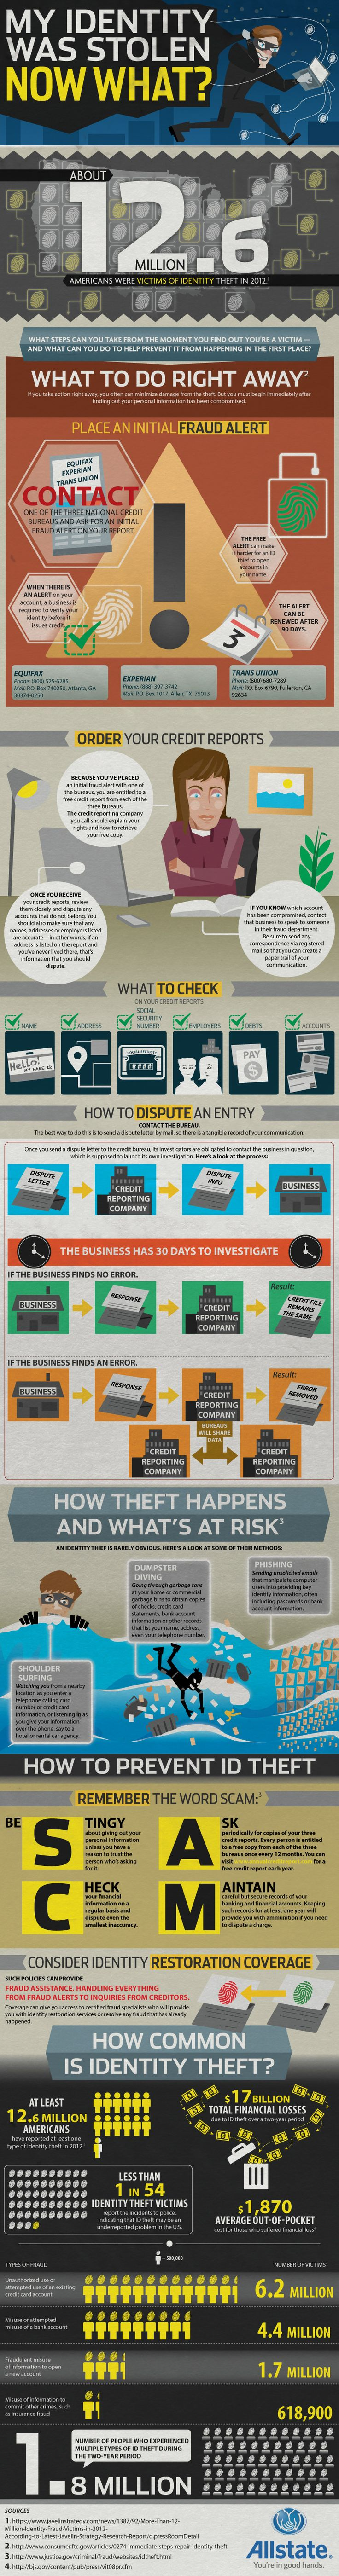 "Infographic: ""My Identity Was Stolen, Now What? A Visual Guide to Getting Your Identity Back and How to Keep It From Happening in the First Place"" 